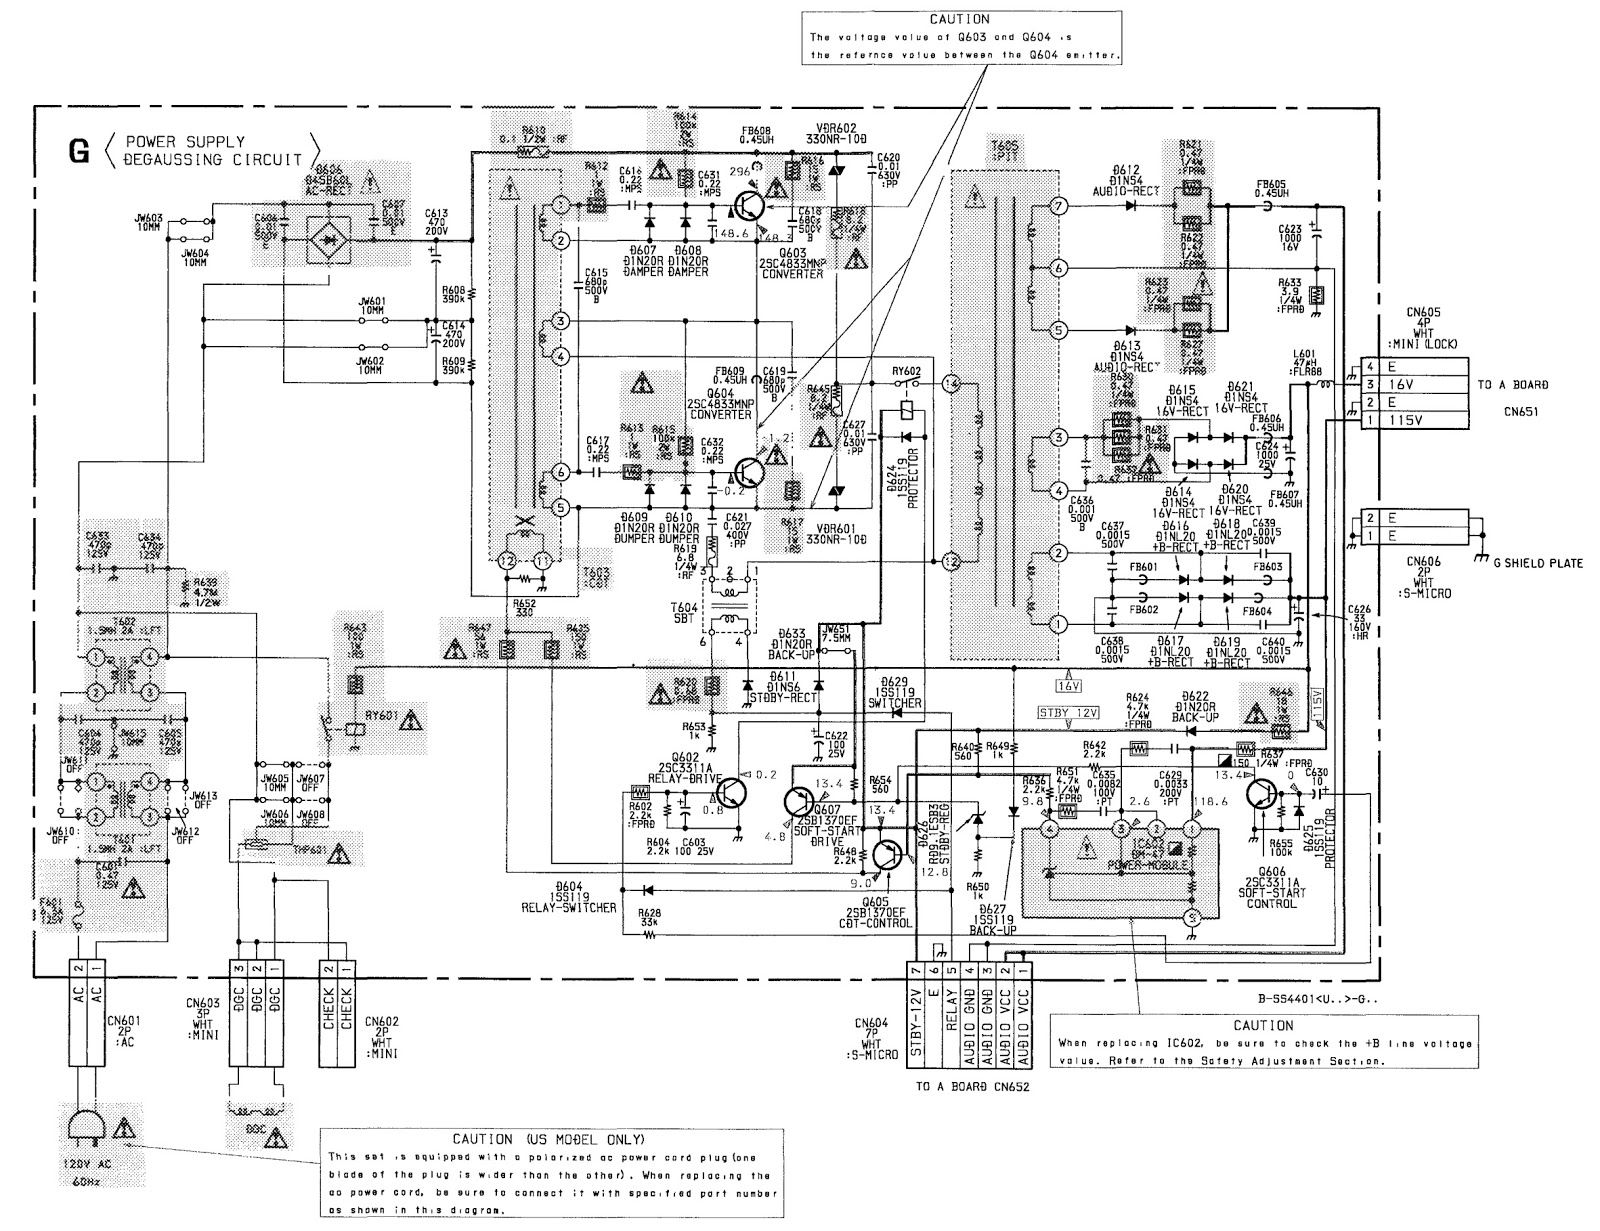 Schematic Diagram Tv Sony Trinitron: Sony kv fv trinitron